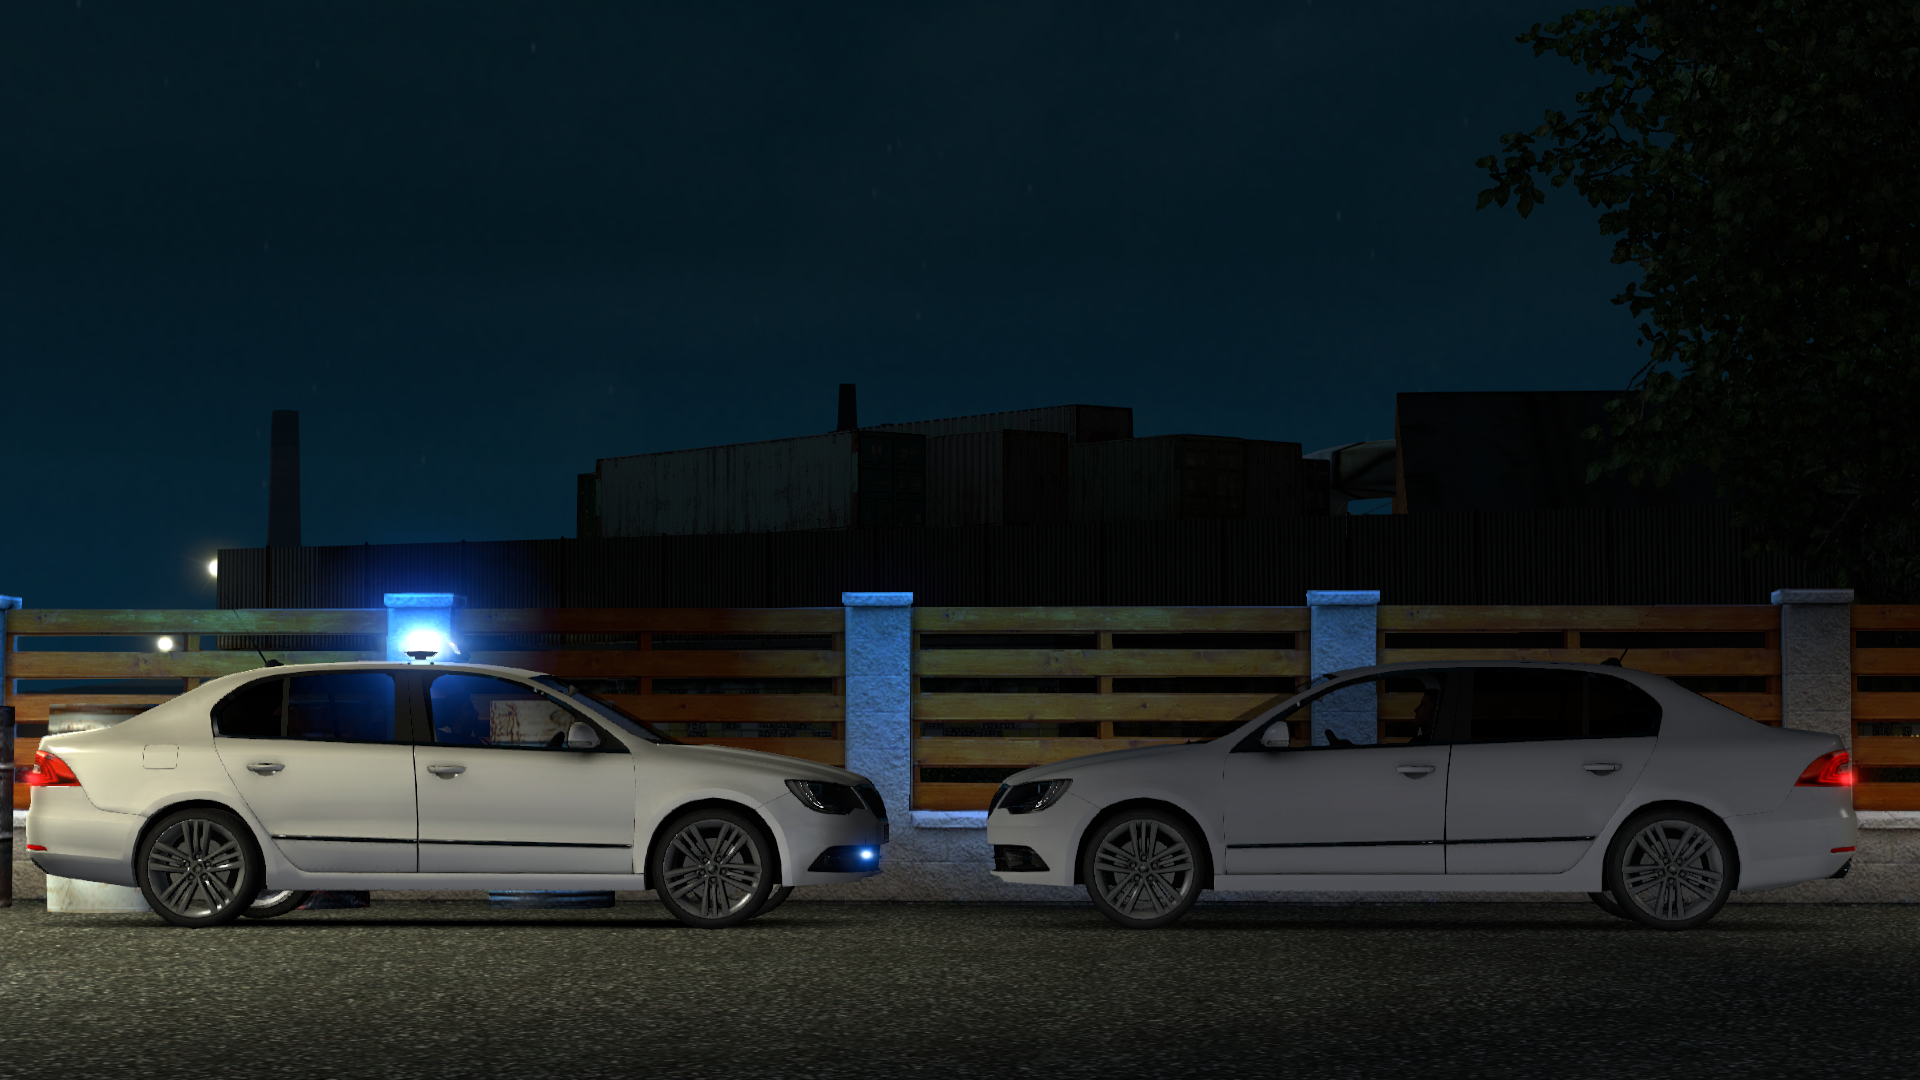 ets2_20180724_144733_00.png